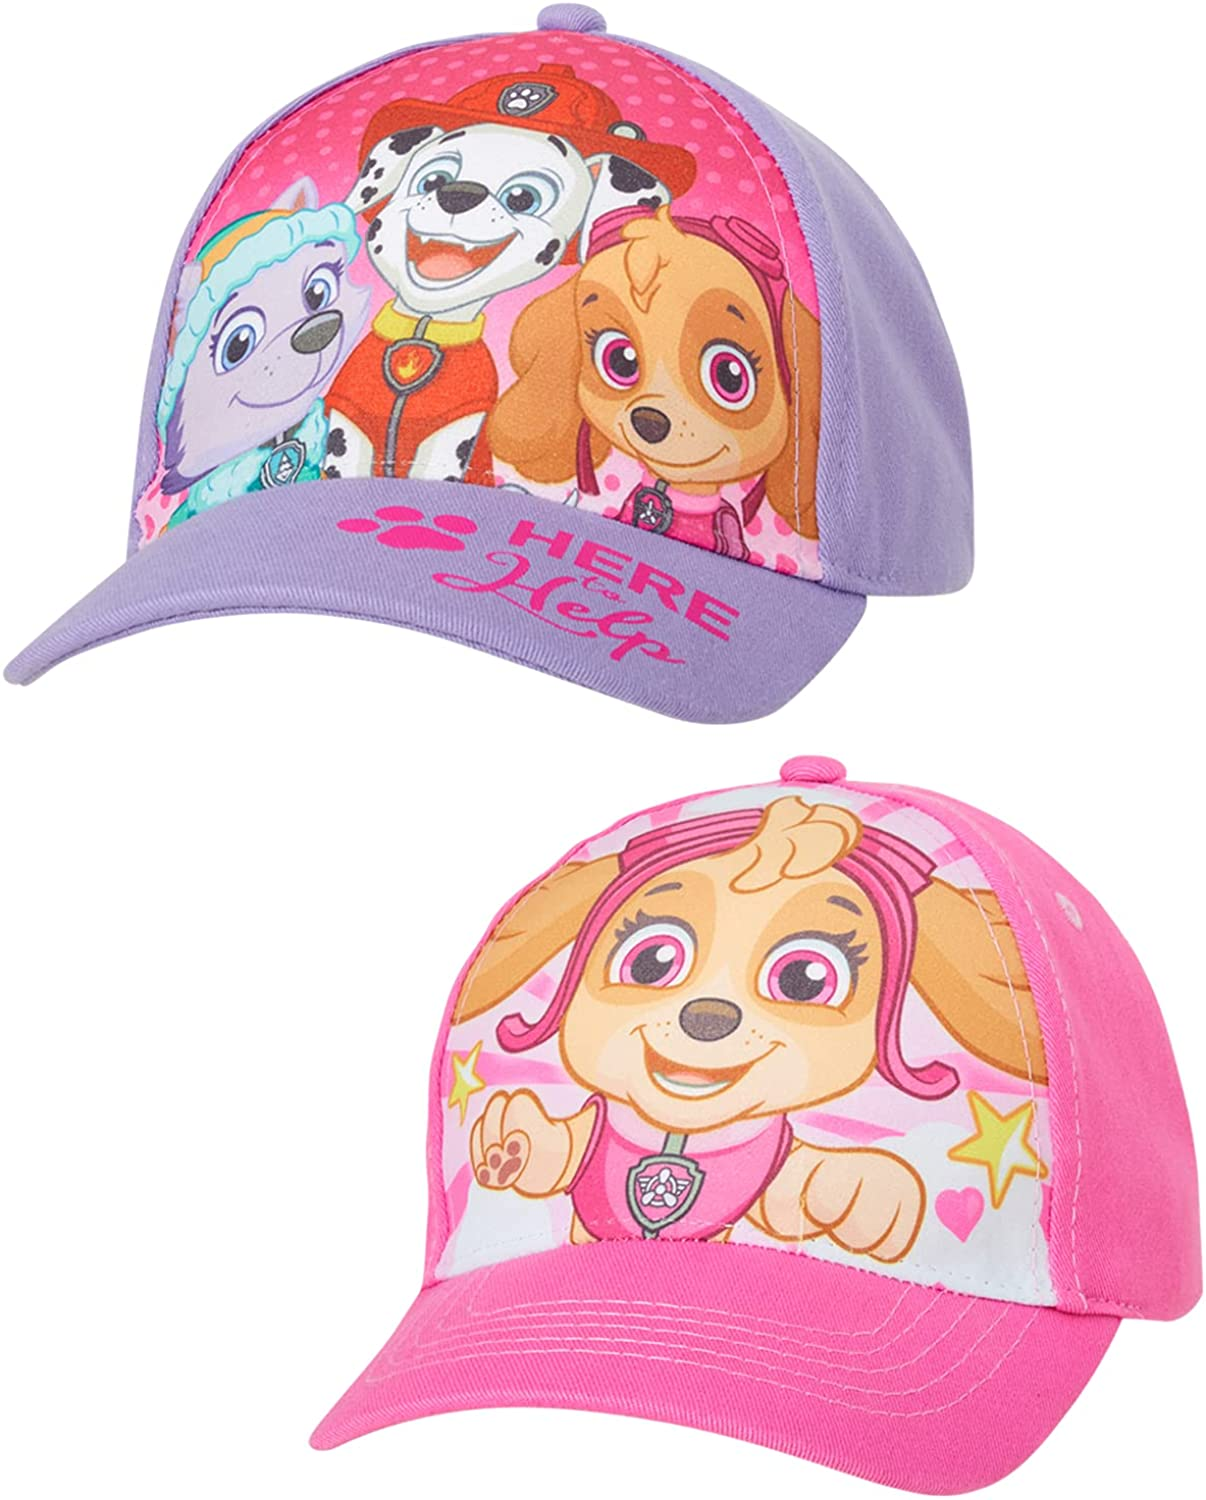 Nickelodeon Girls Paw Free shipping on posting reviews Patrol 2 Pack Baseball Cap Cotton Challenge the lowest price of Japan ☆ Toddler